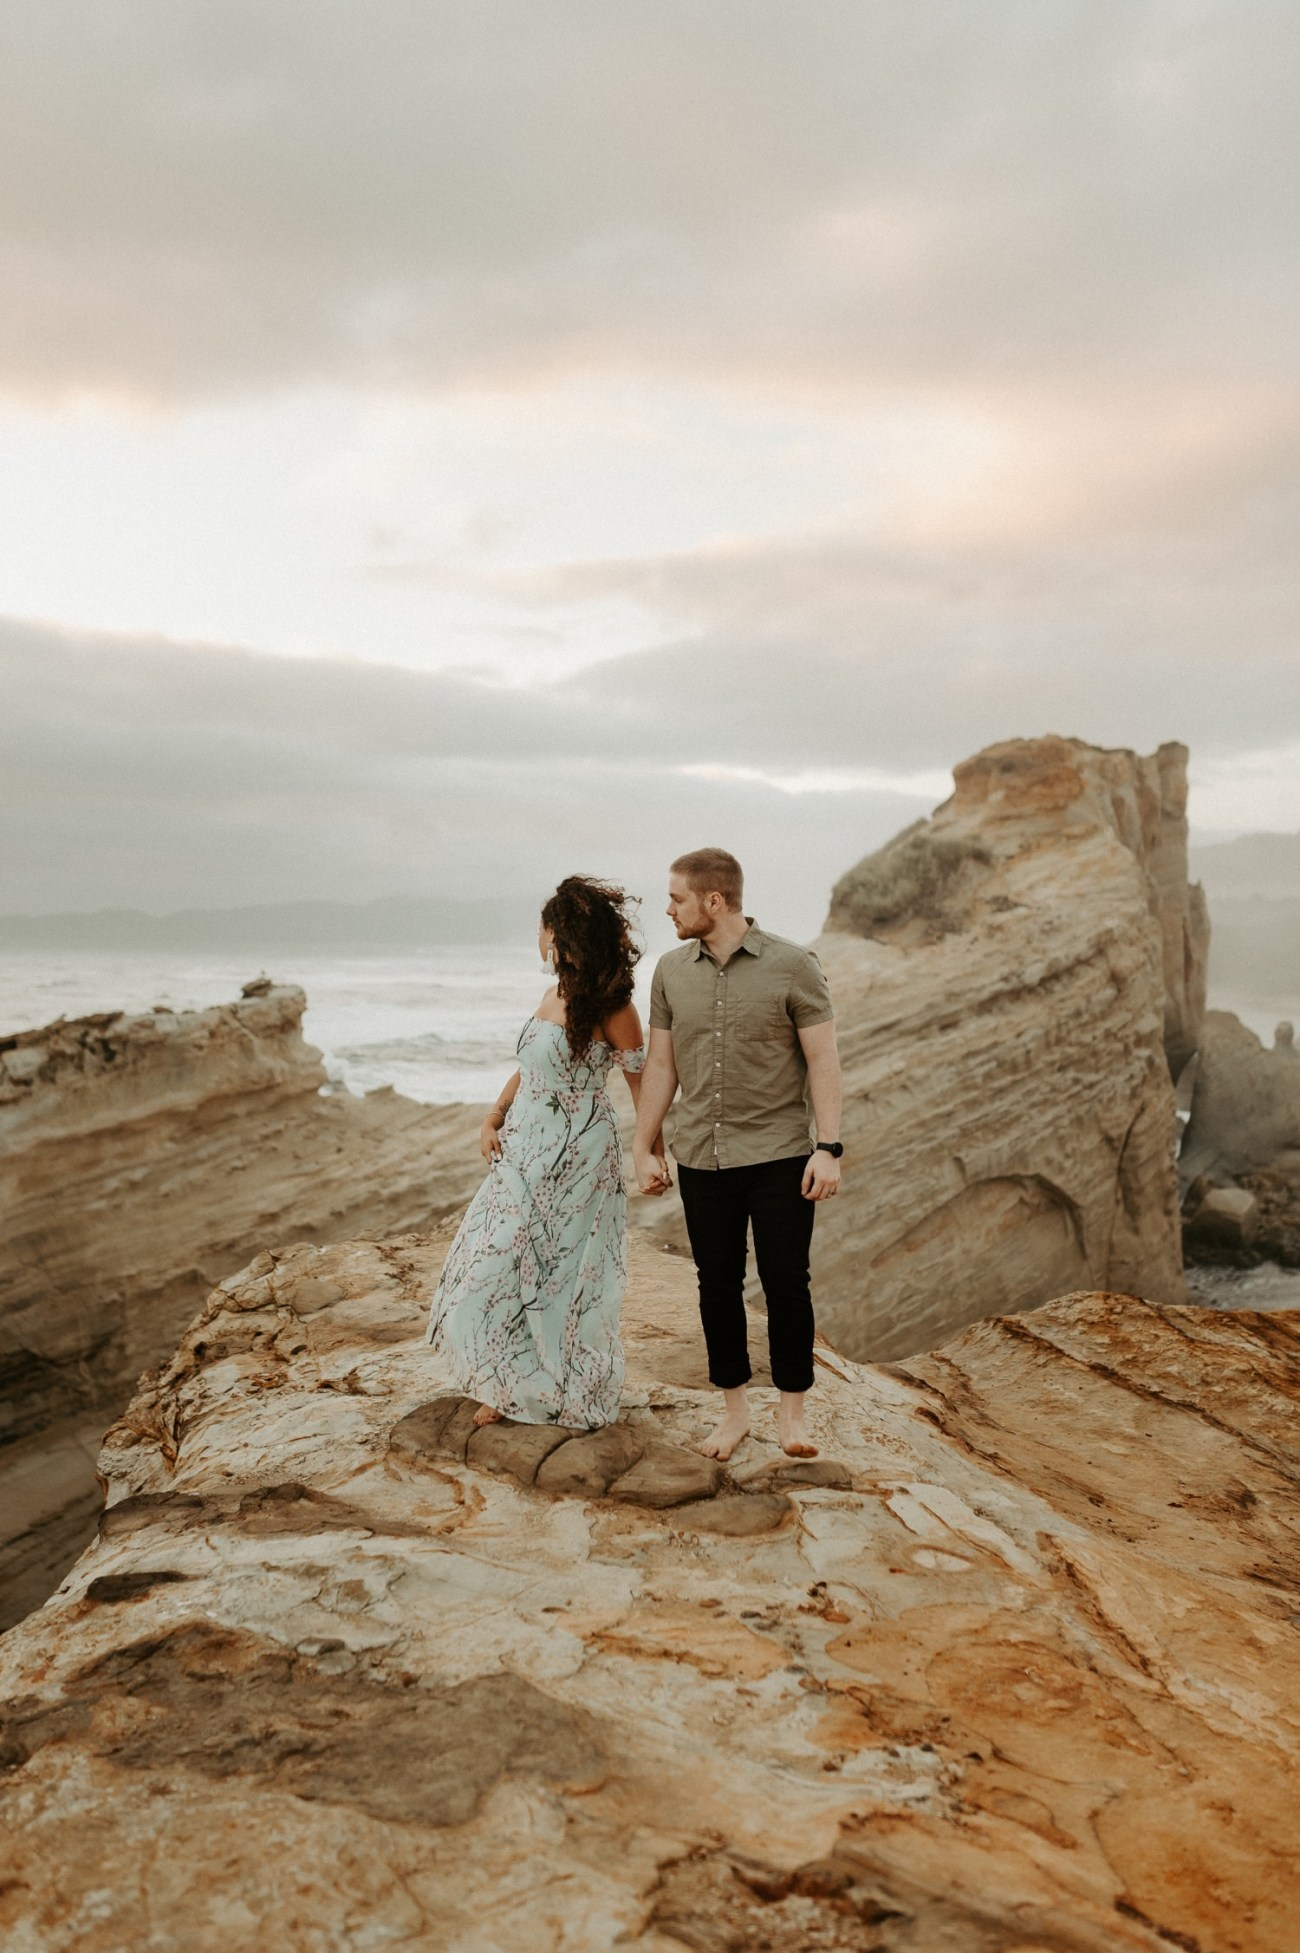 Cape Kiwanda Engagement Session Best Location In Oregon For Engagement Photos Portland Wedding Photographer Anais Possamai Photography 019